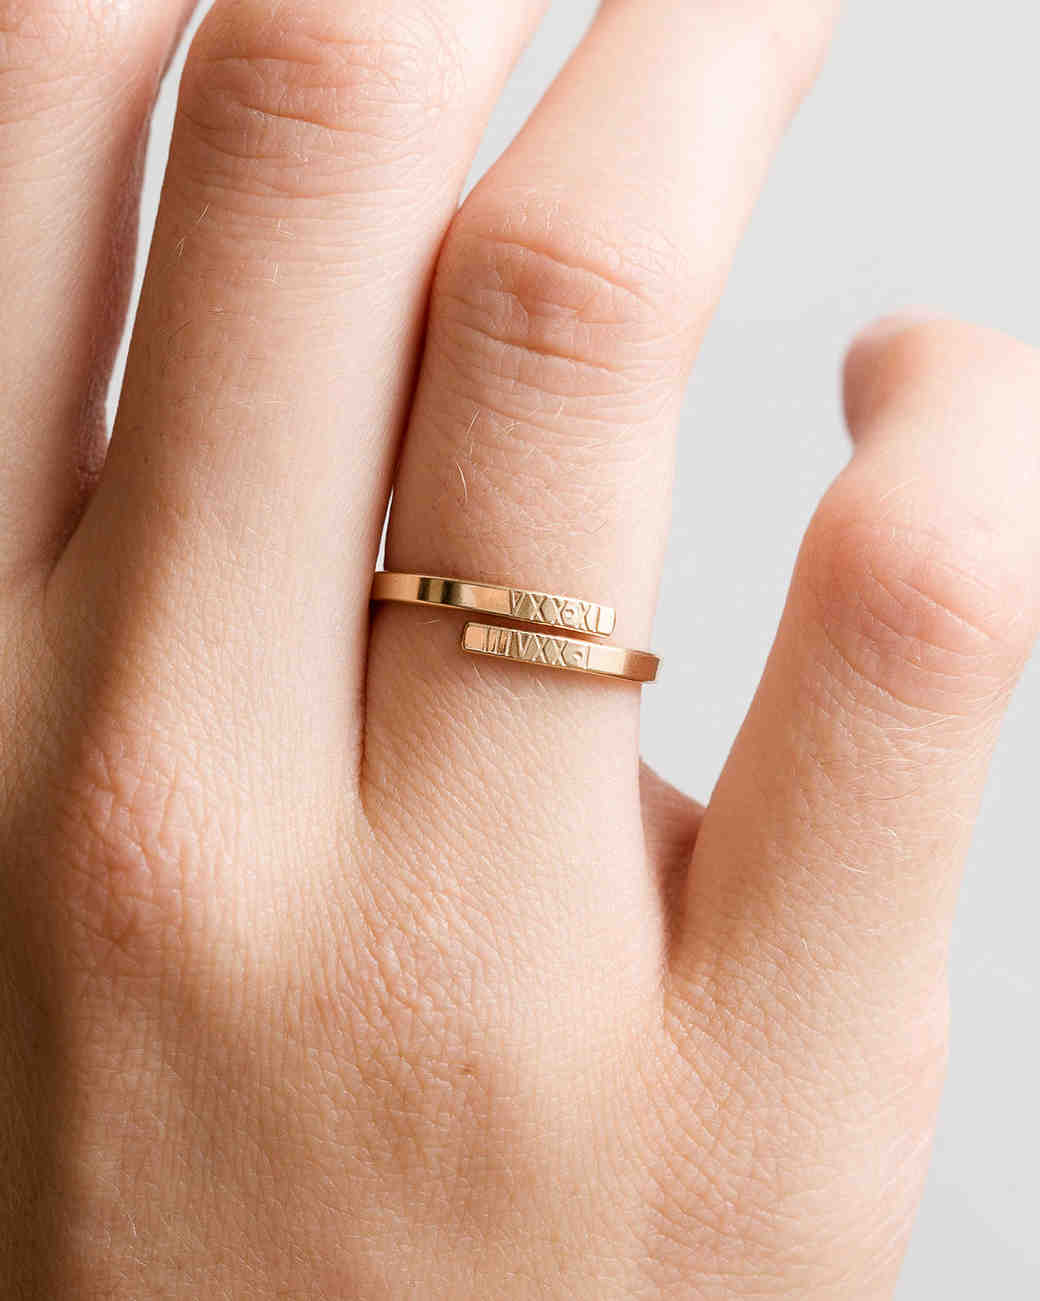 personalized bridesmaids jewelry gift etsy gold ring